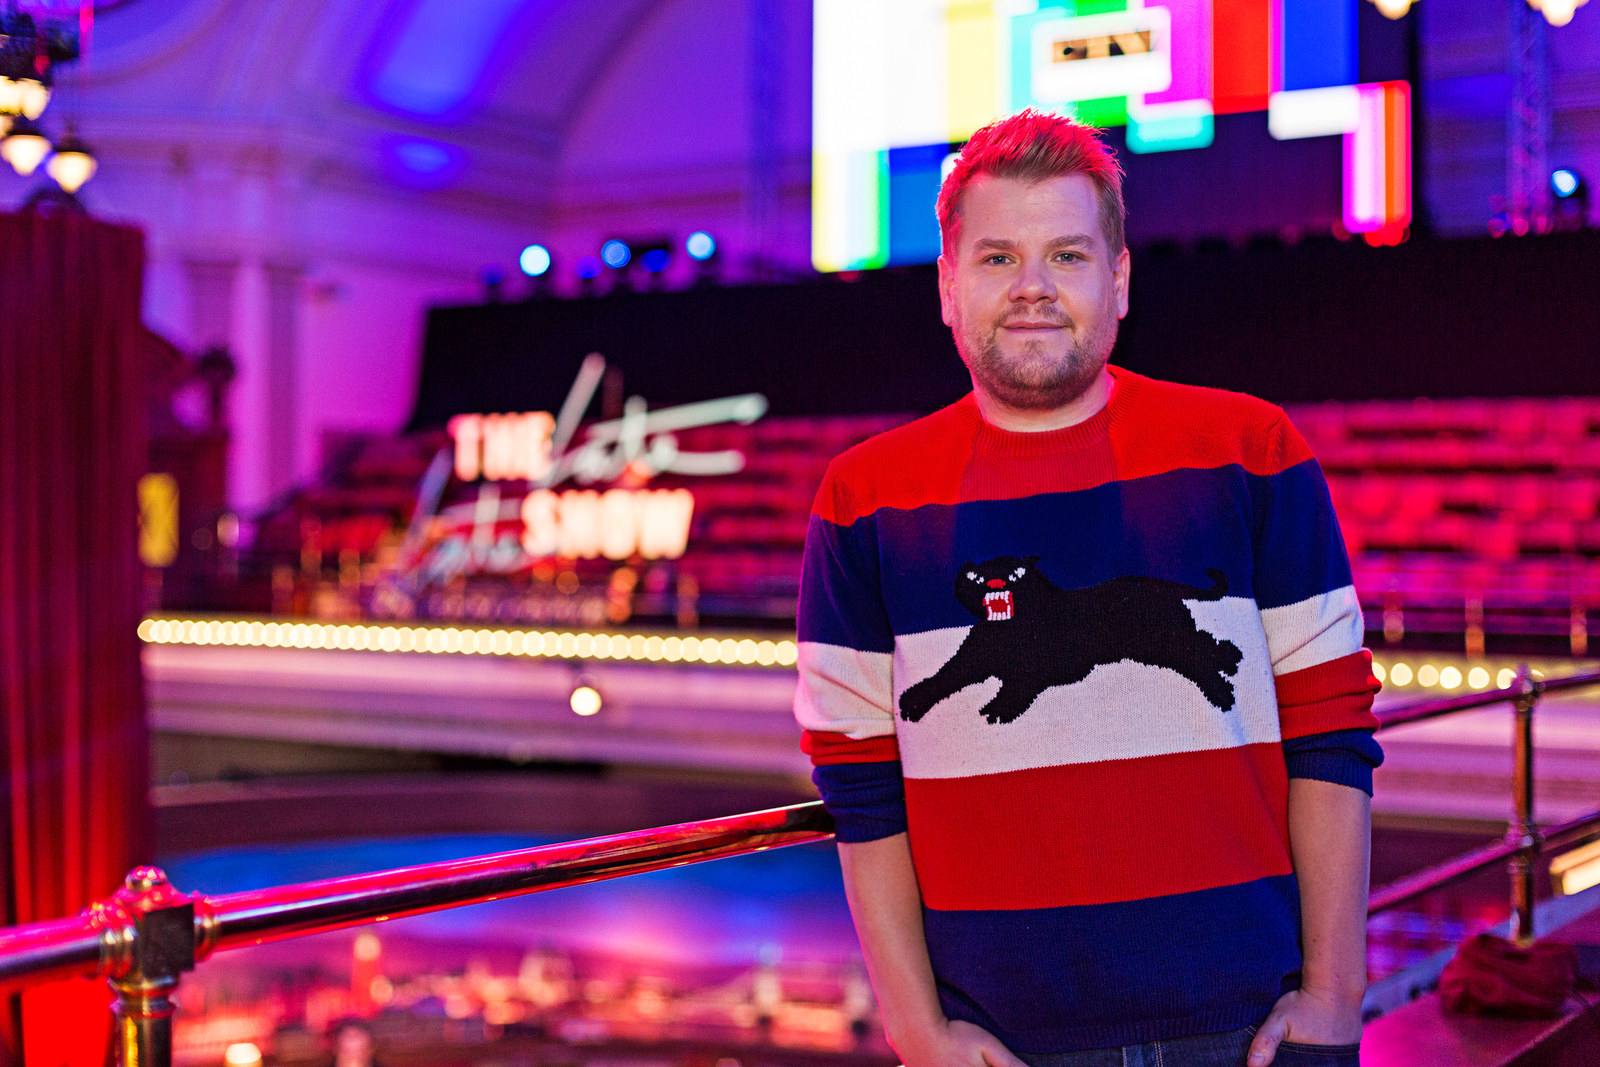 """James Corden On Bringing """"The Late Late Show"""" To Britain Only Days After The London Attack"""